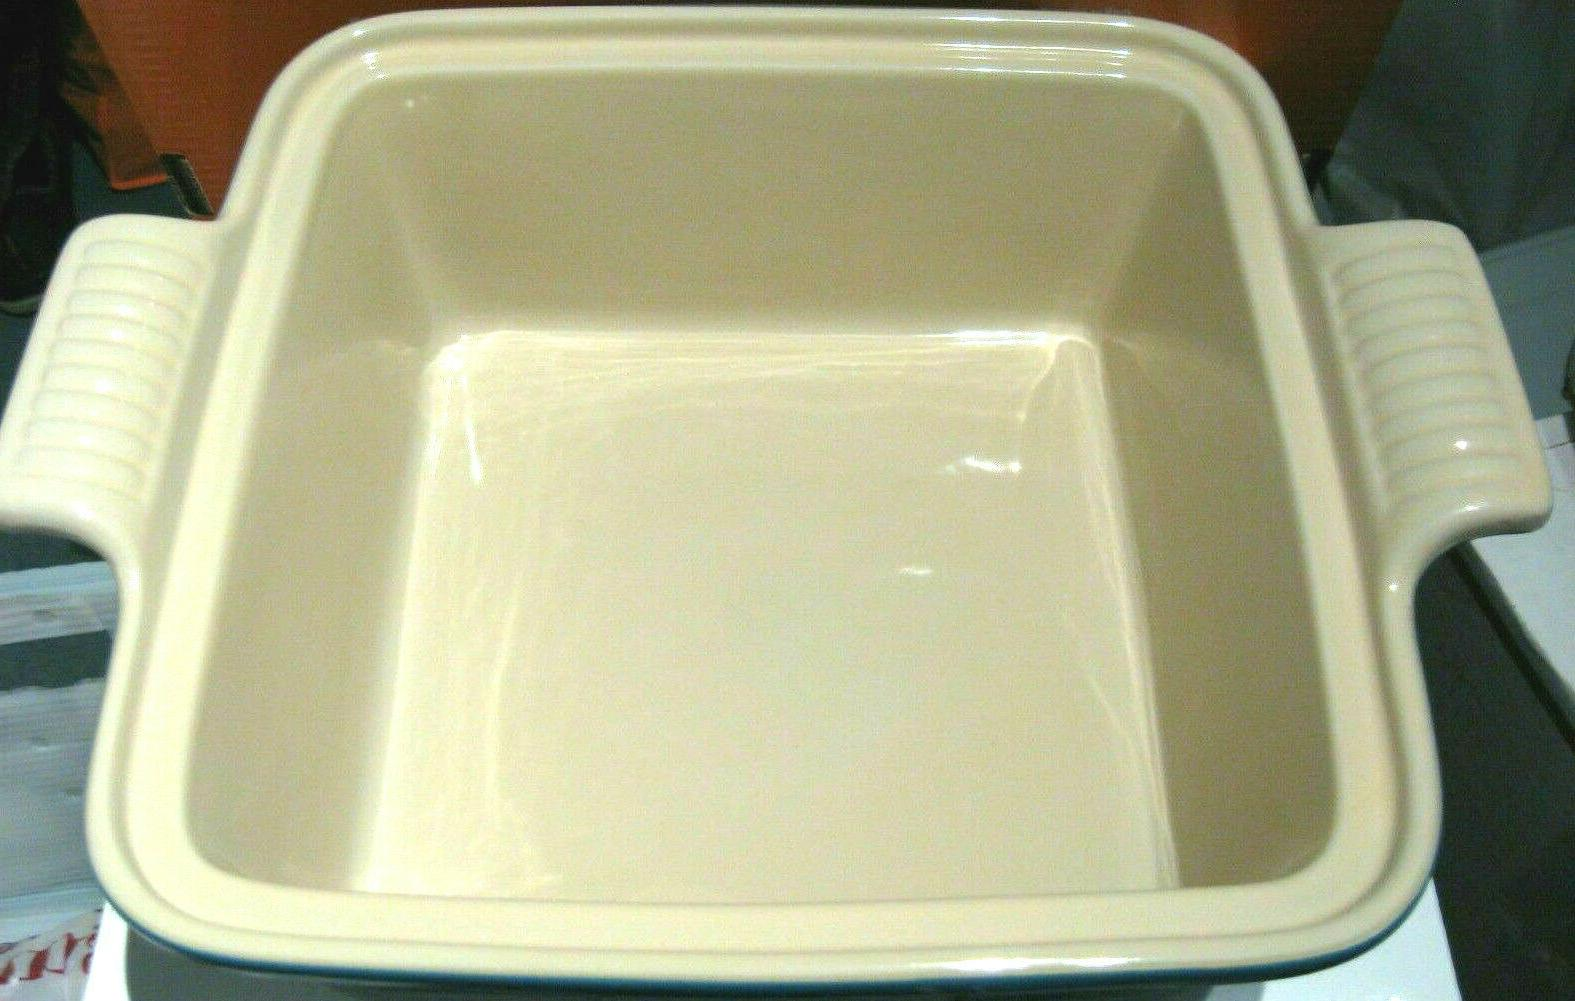 LE Stoneware Square Casserole With Teal